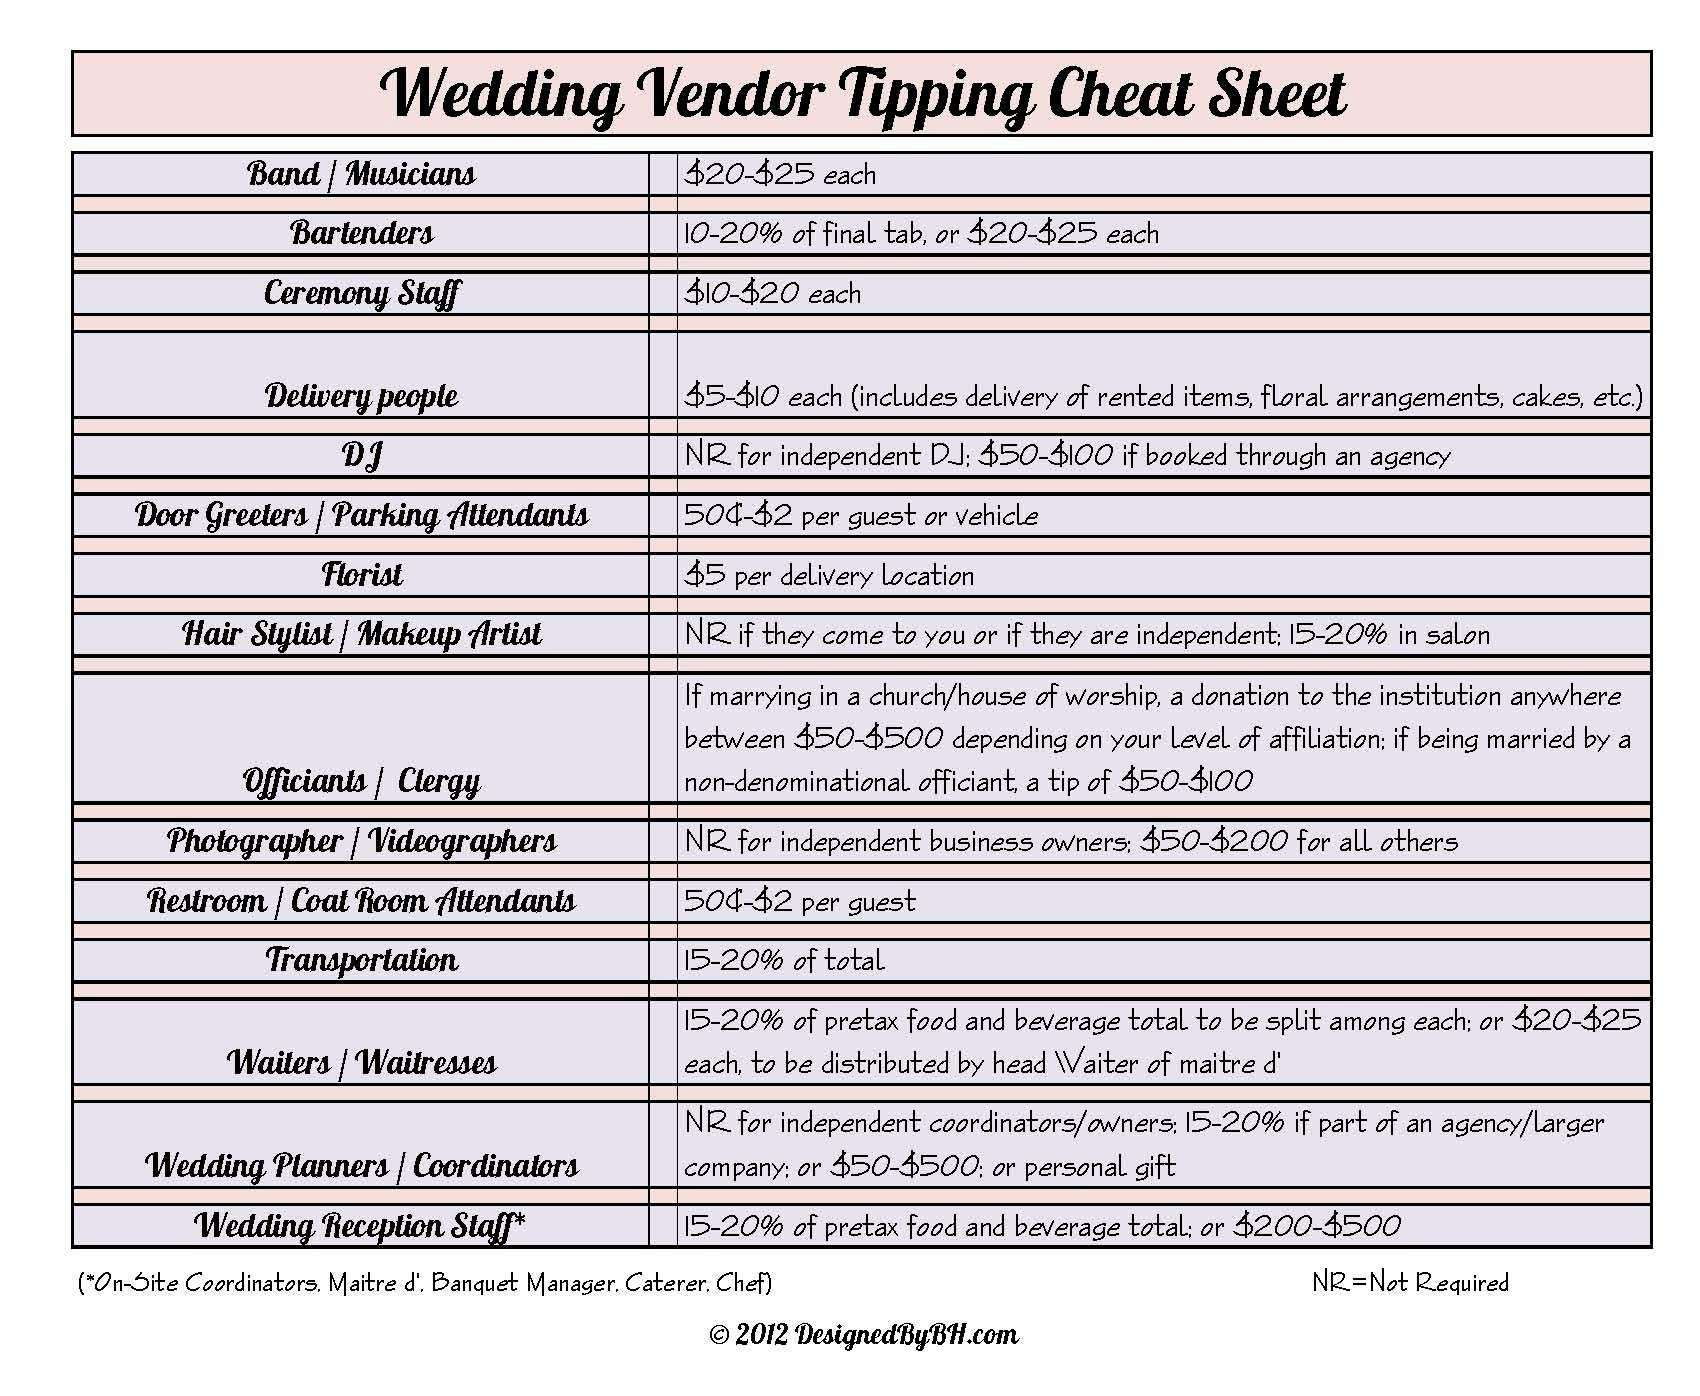 Wedding vendor tipping cheat sheet free printable designedbybh wedding vendor tipping cheat sheet free printable designedbybh junglespirit Image collections